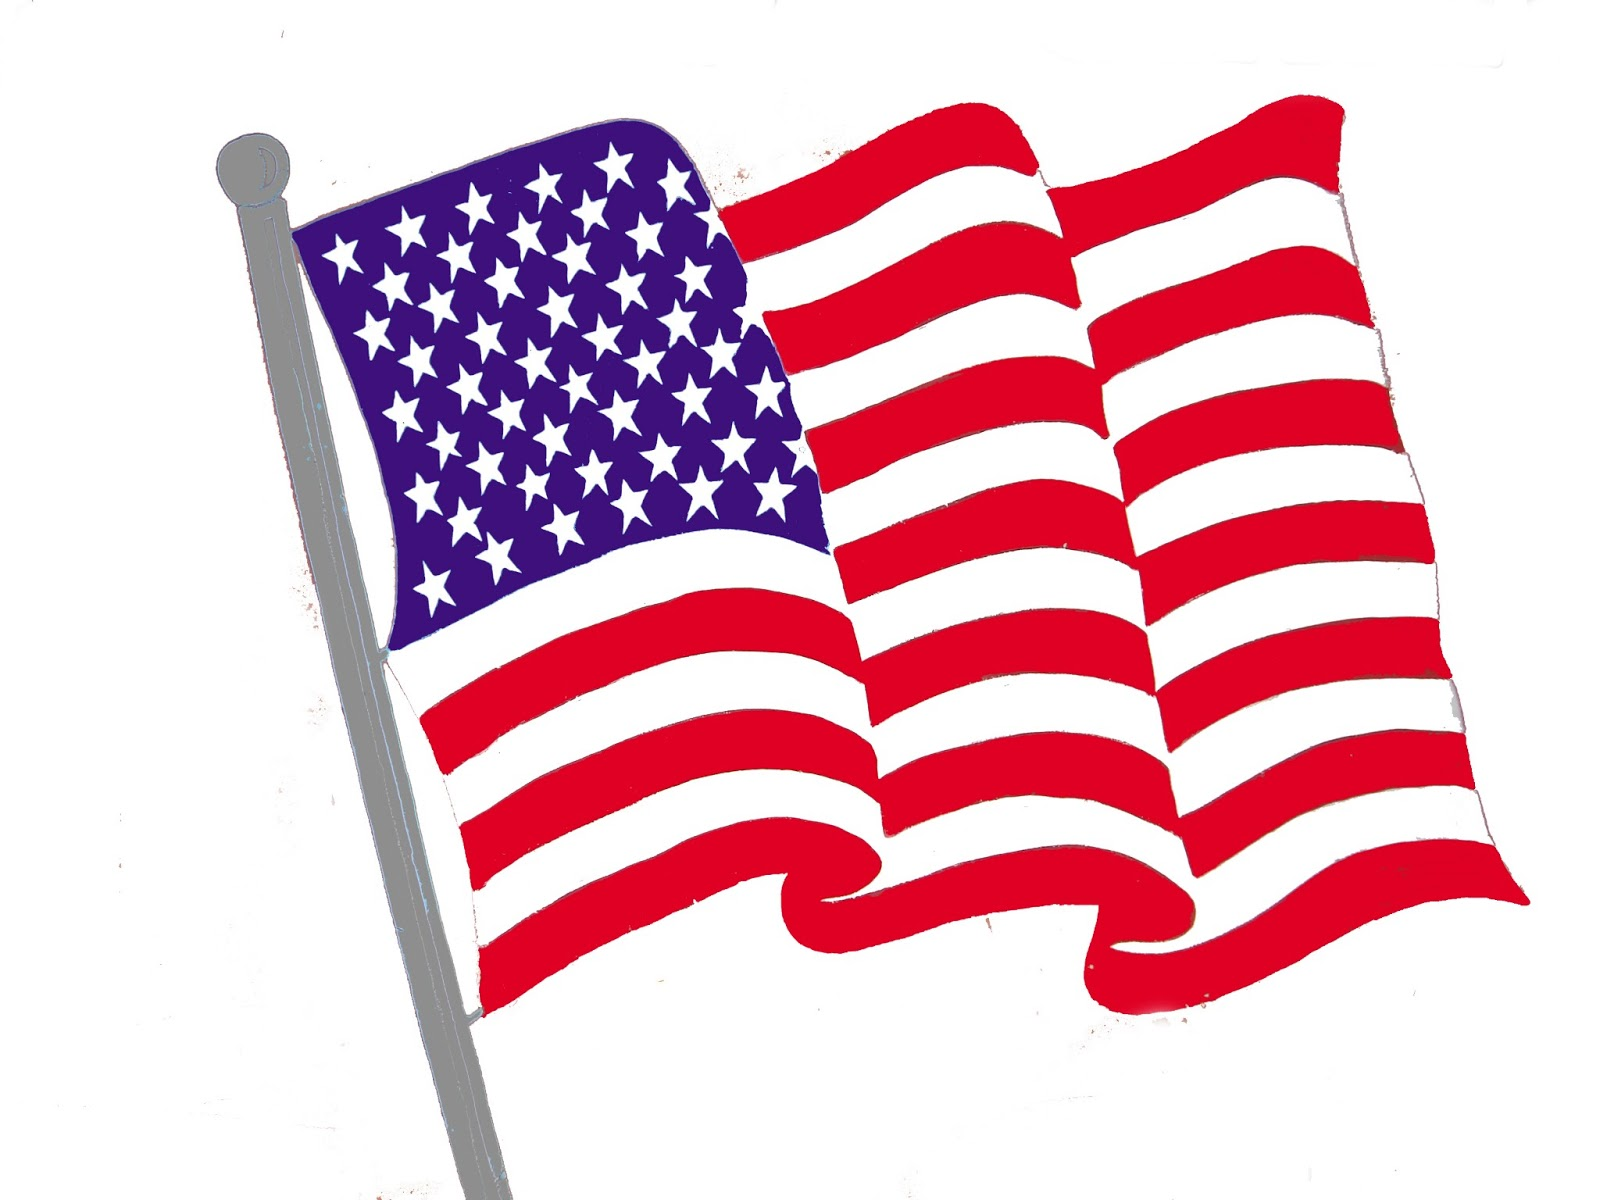 Us Flag Clip Art United States Flag Fink-Us flag clip art united states flag fink-19